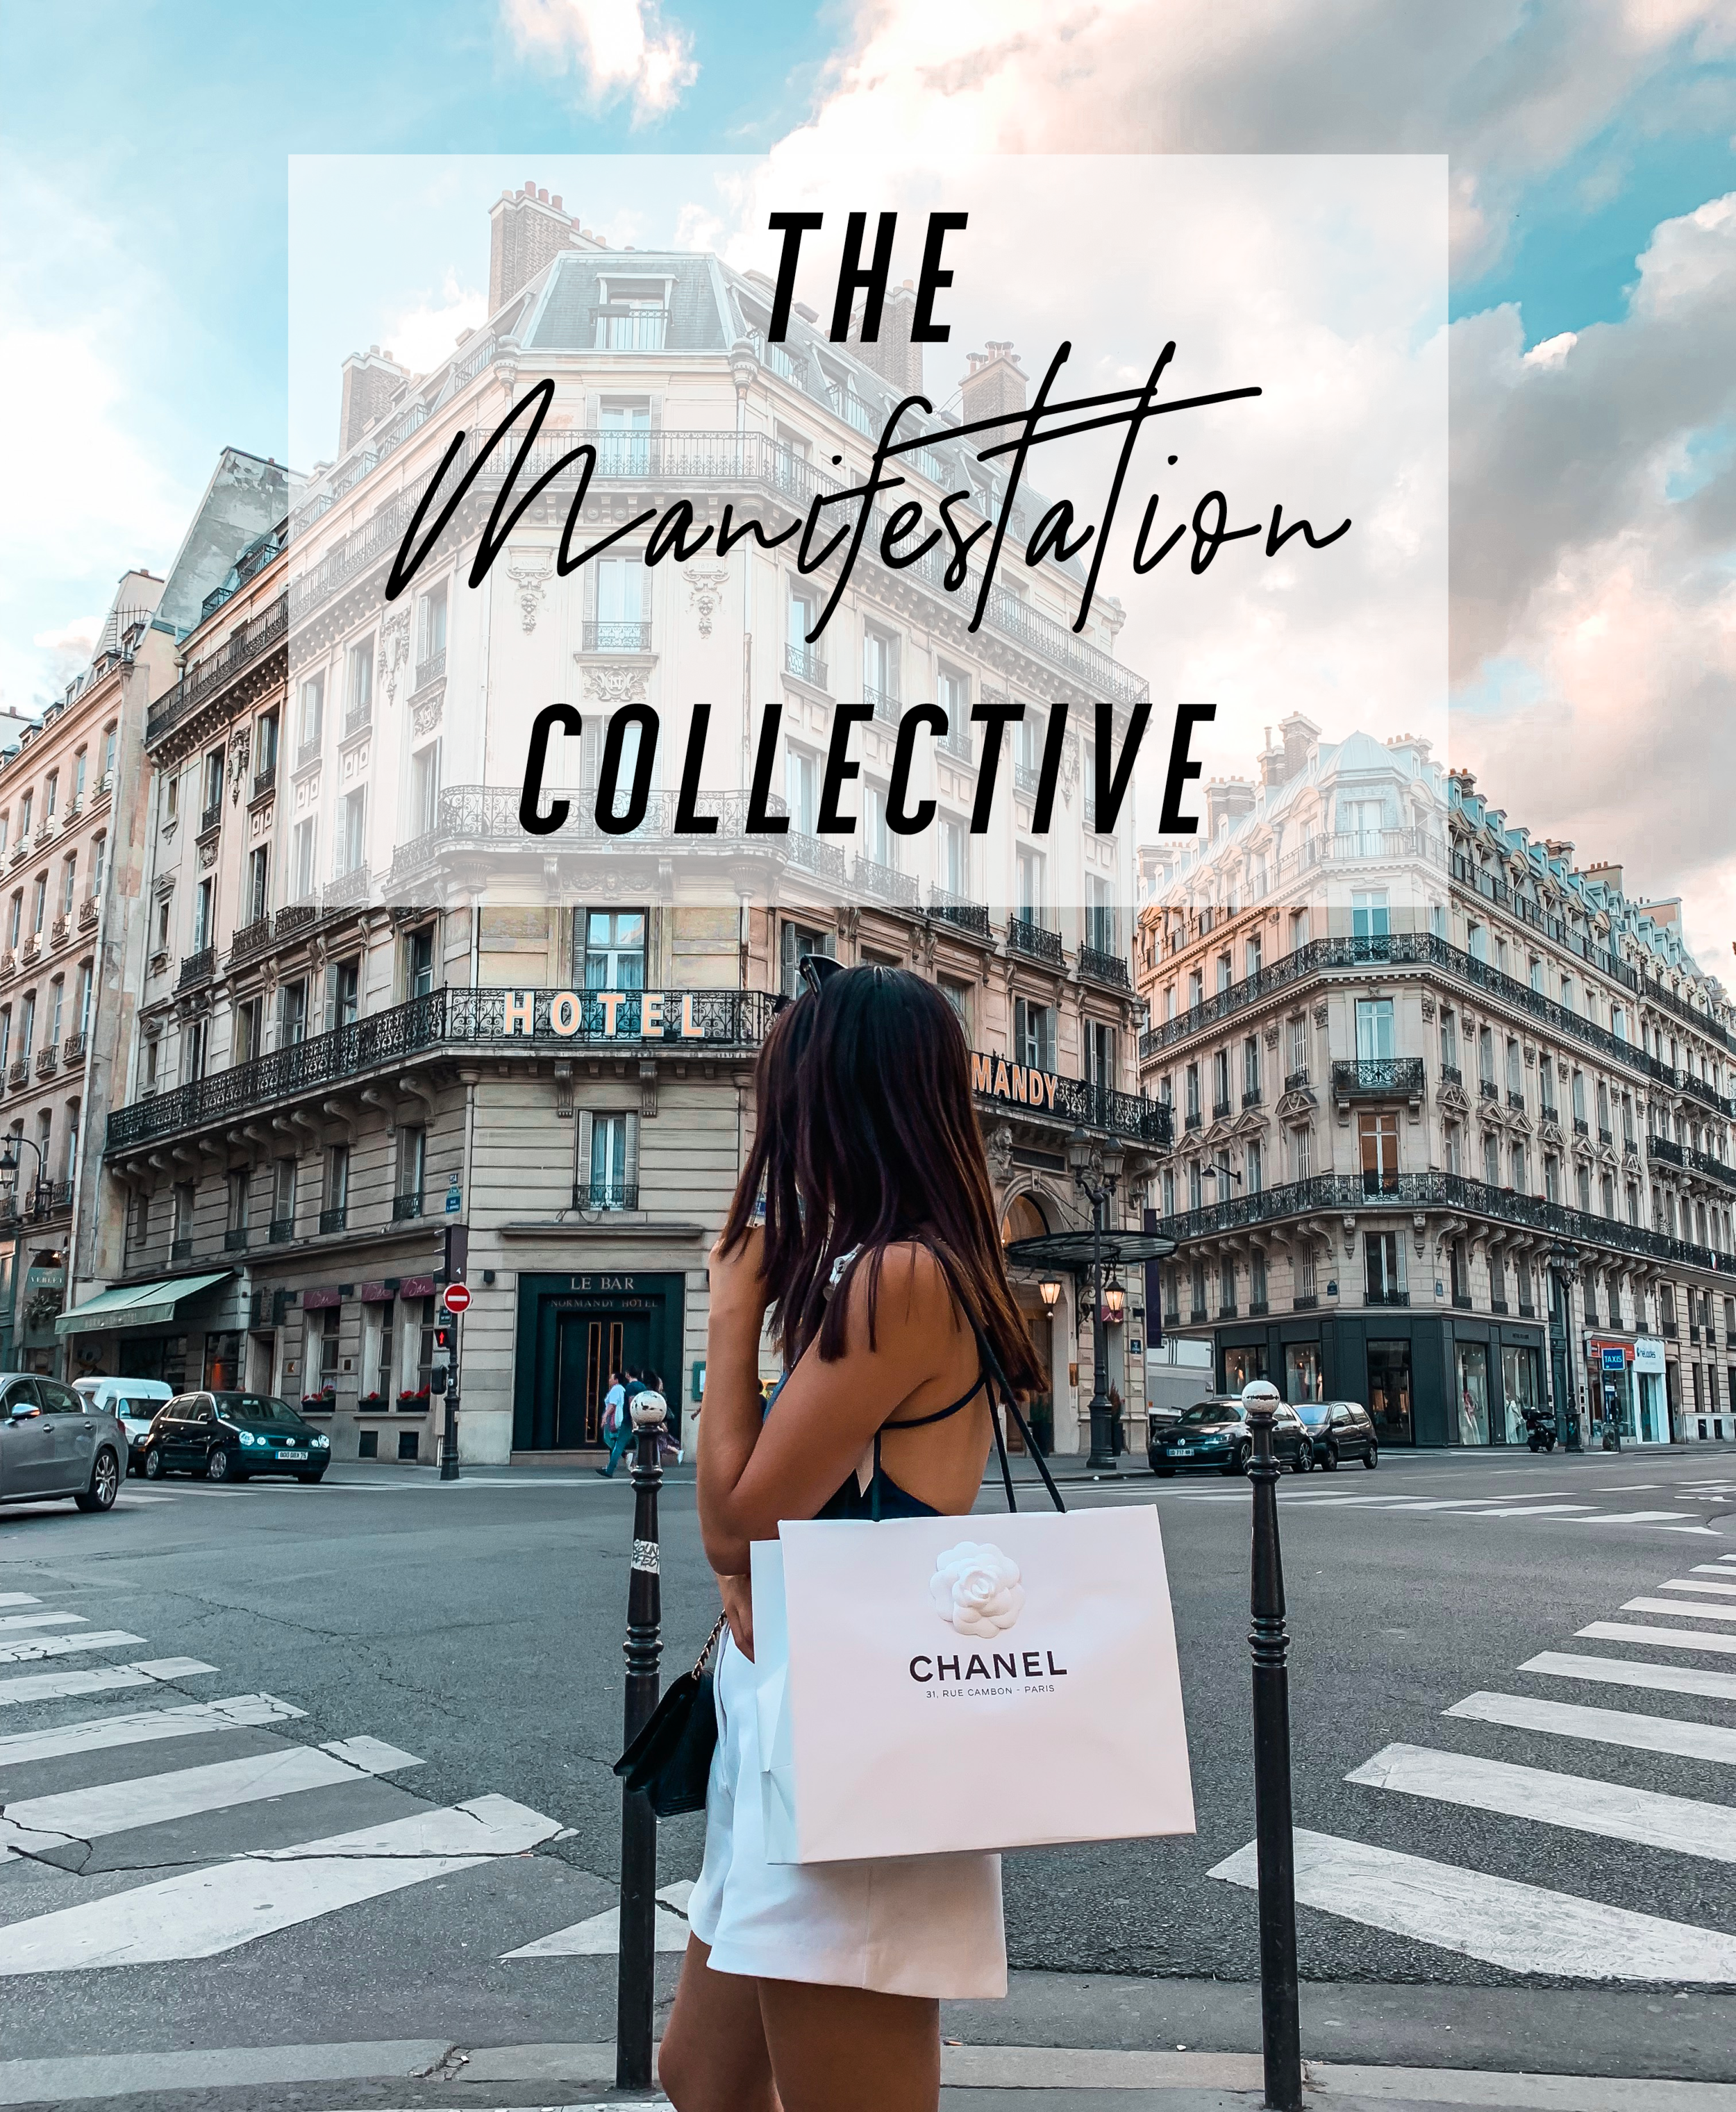 The ultimate collective to manifest your dreams. - What if you could be abundant without trying to manifest really really hard? What if money flowed to you effortlessly? What if you nailed getting the clients? What if you got the dream body? What if life FLOWED for you? Girl, this is where we do just that.